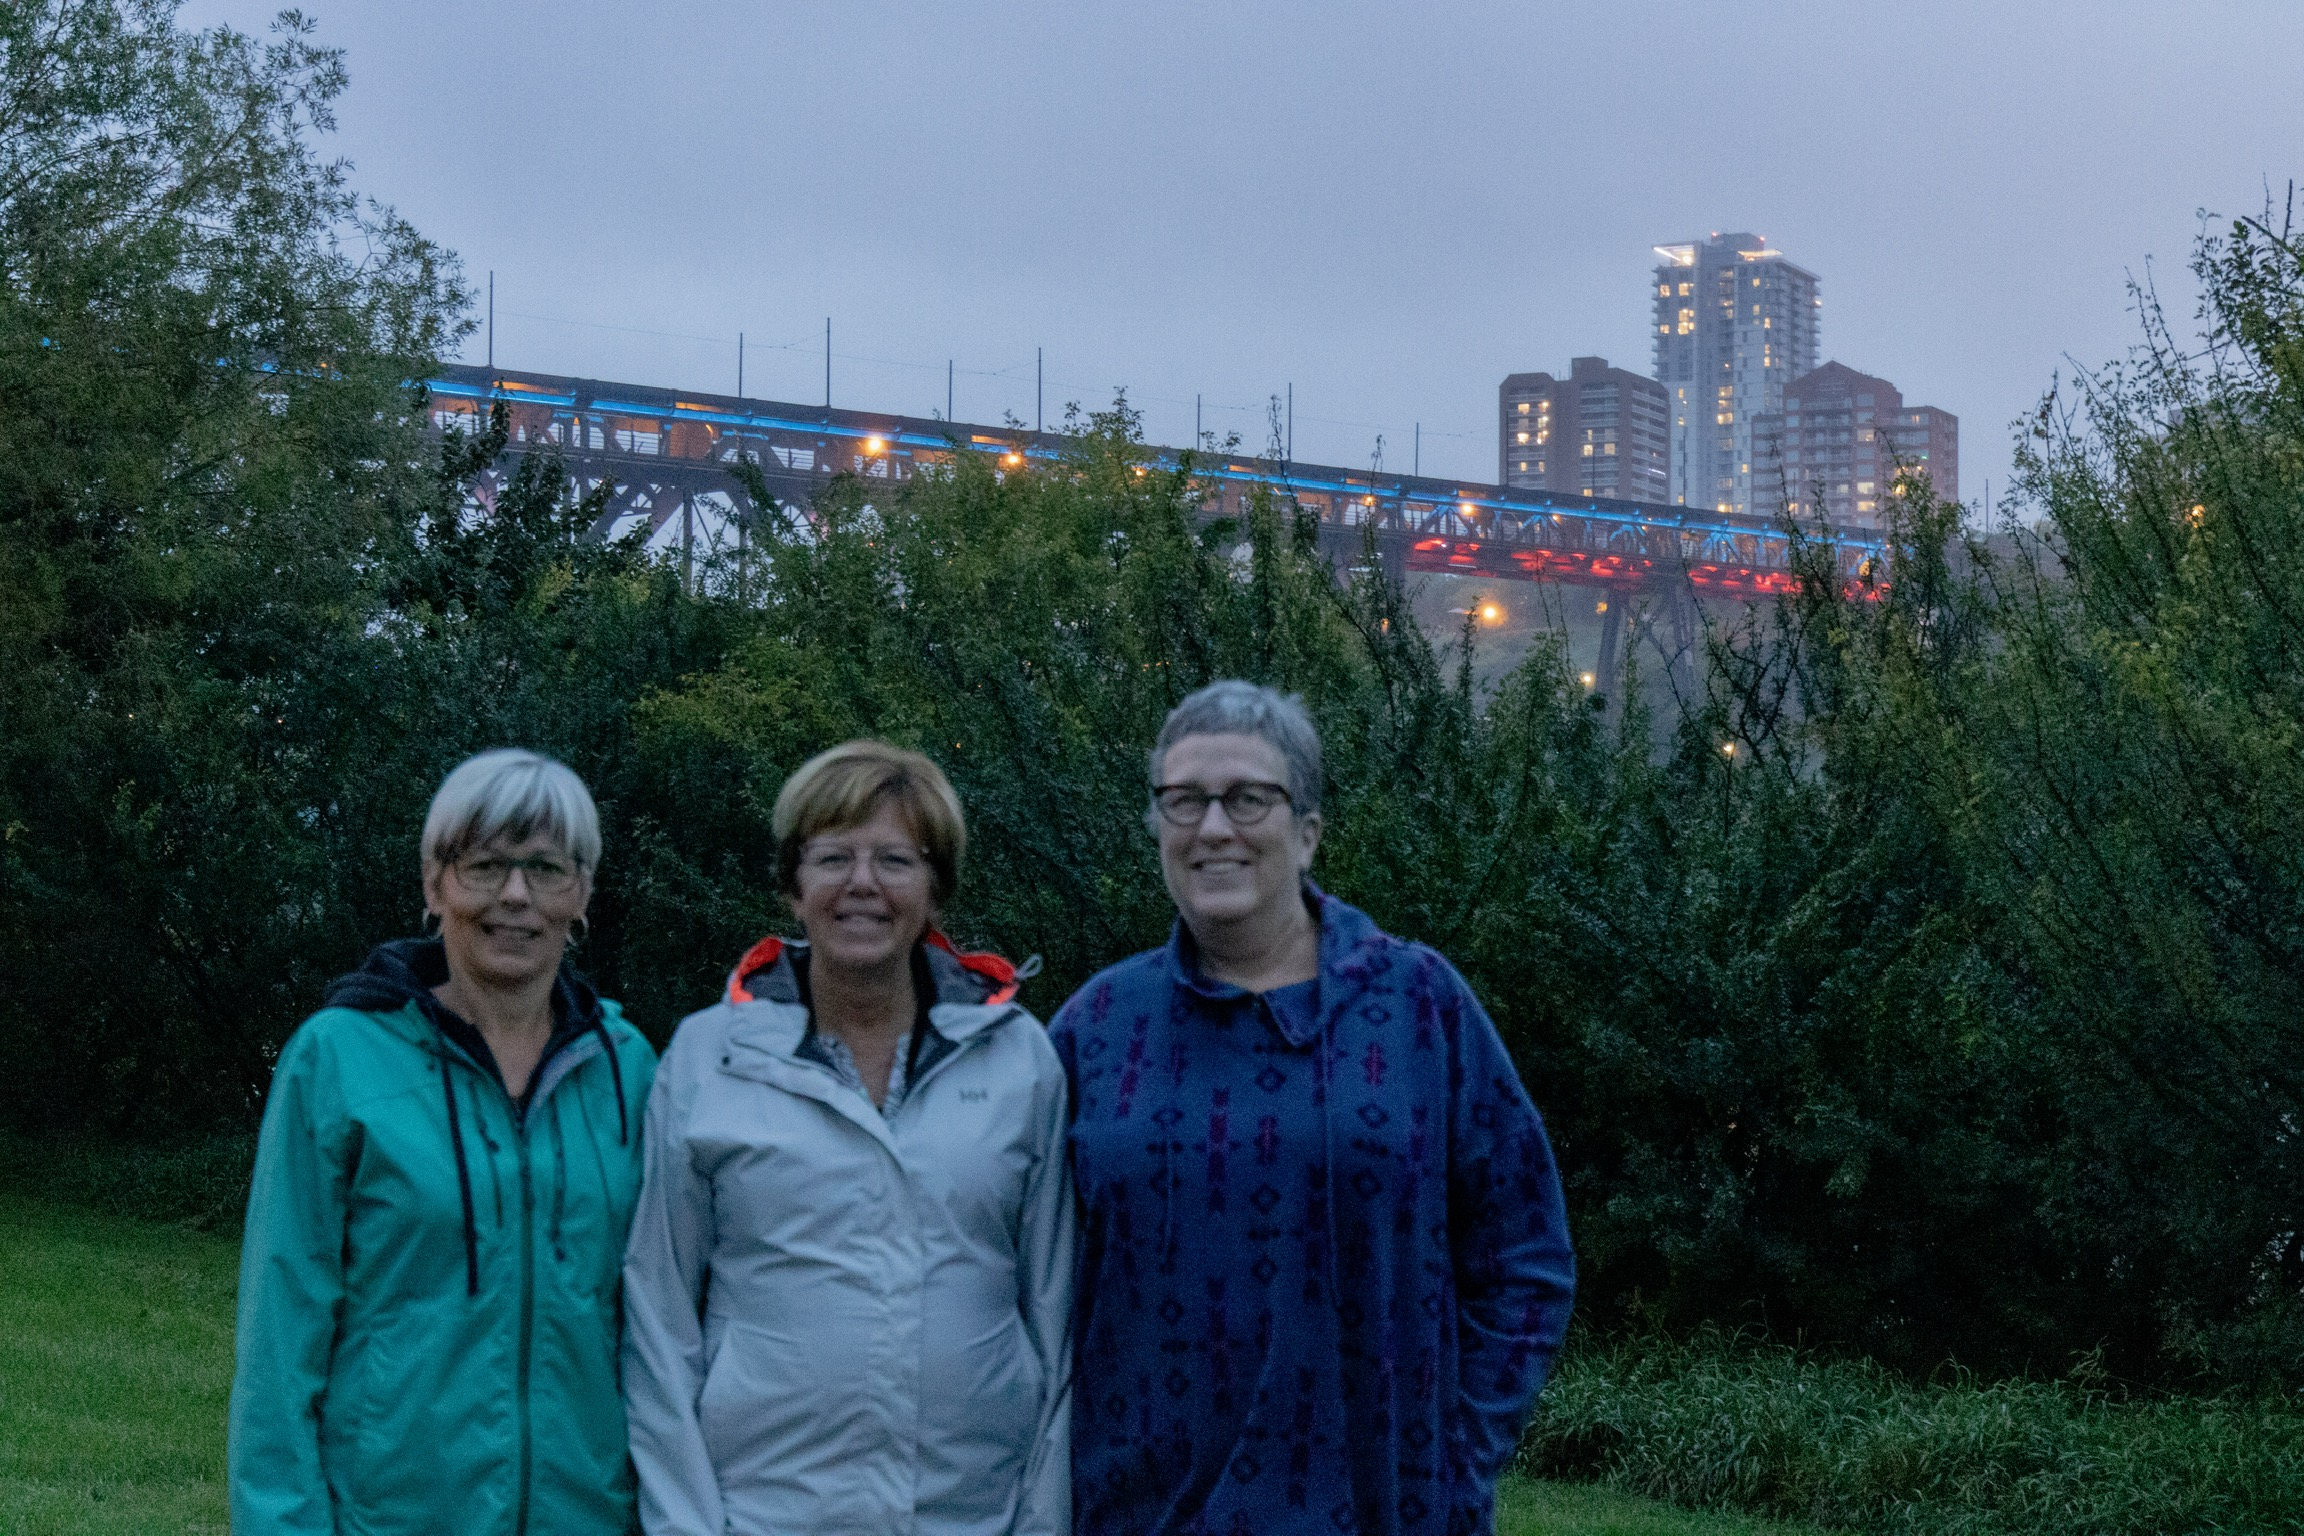 Supporters at the High Level Bridge in Edmonton, Alberta